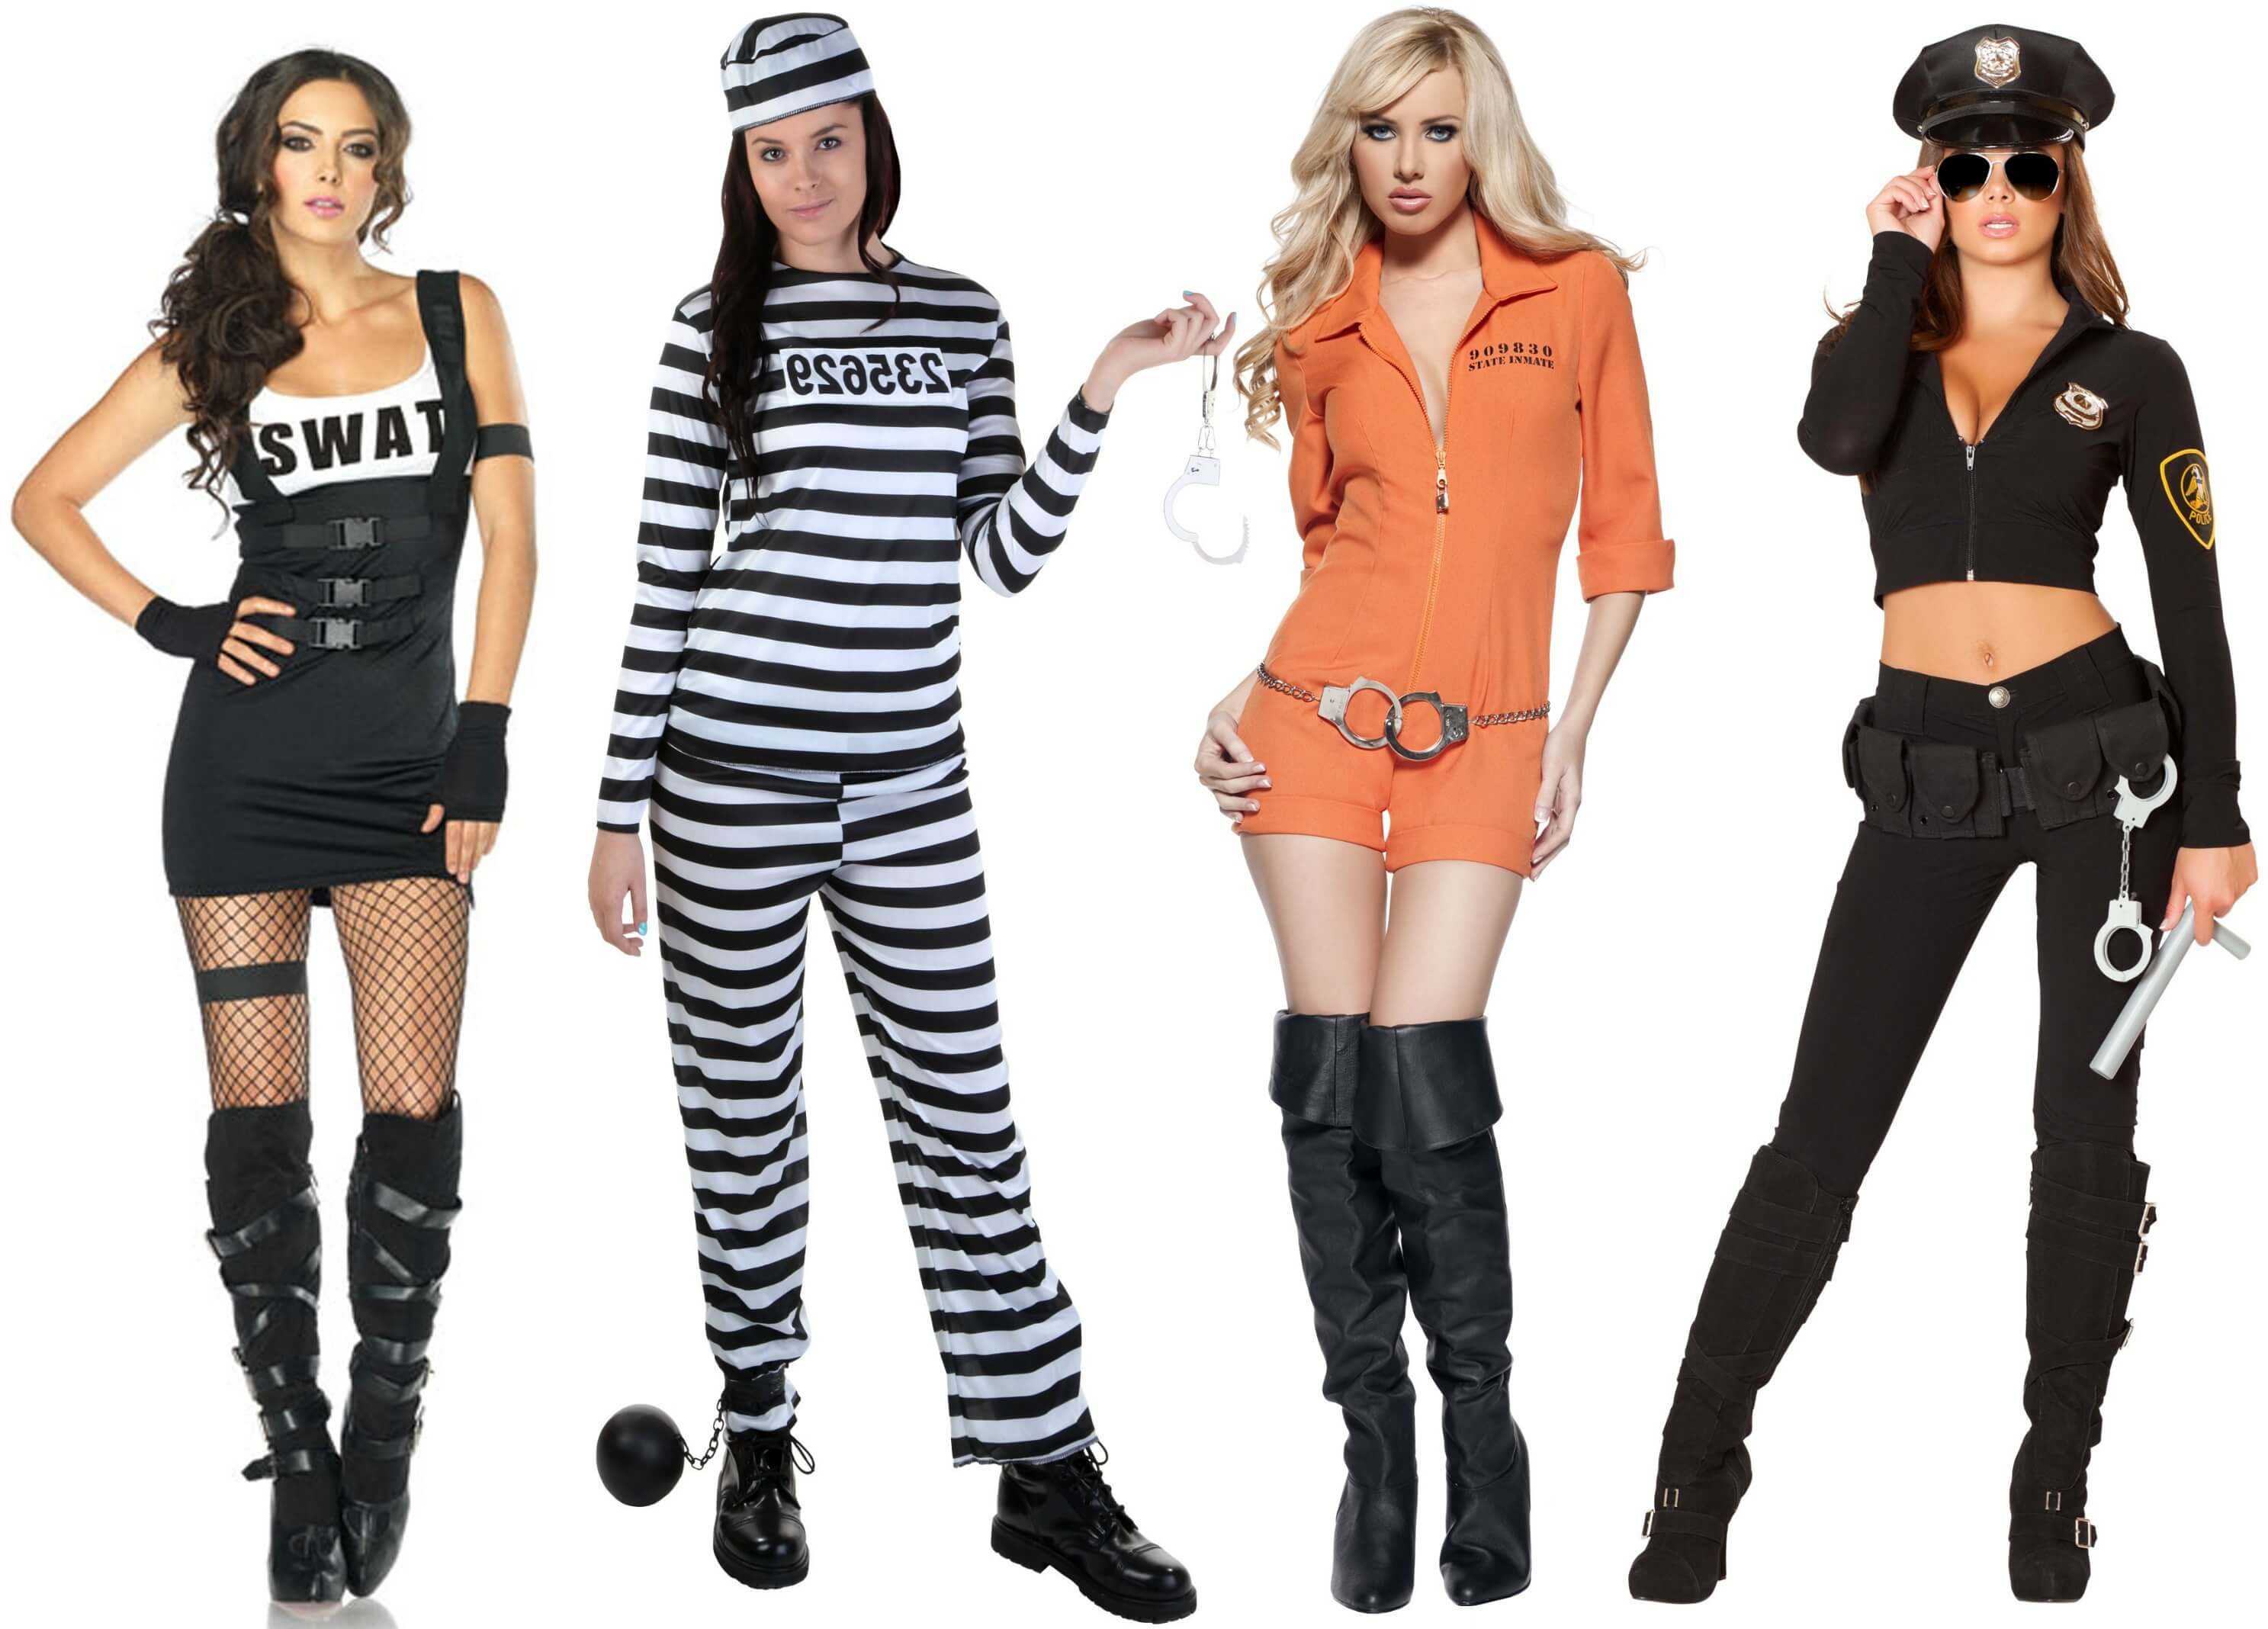 Police Halloween Costumes for Law Enforcement Majors